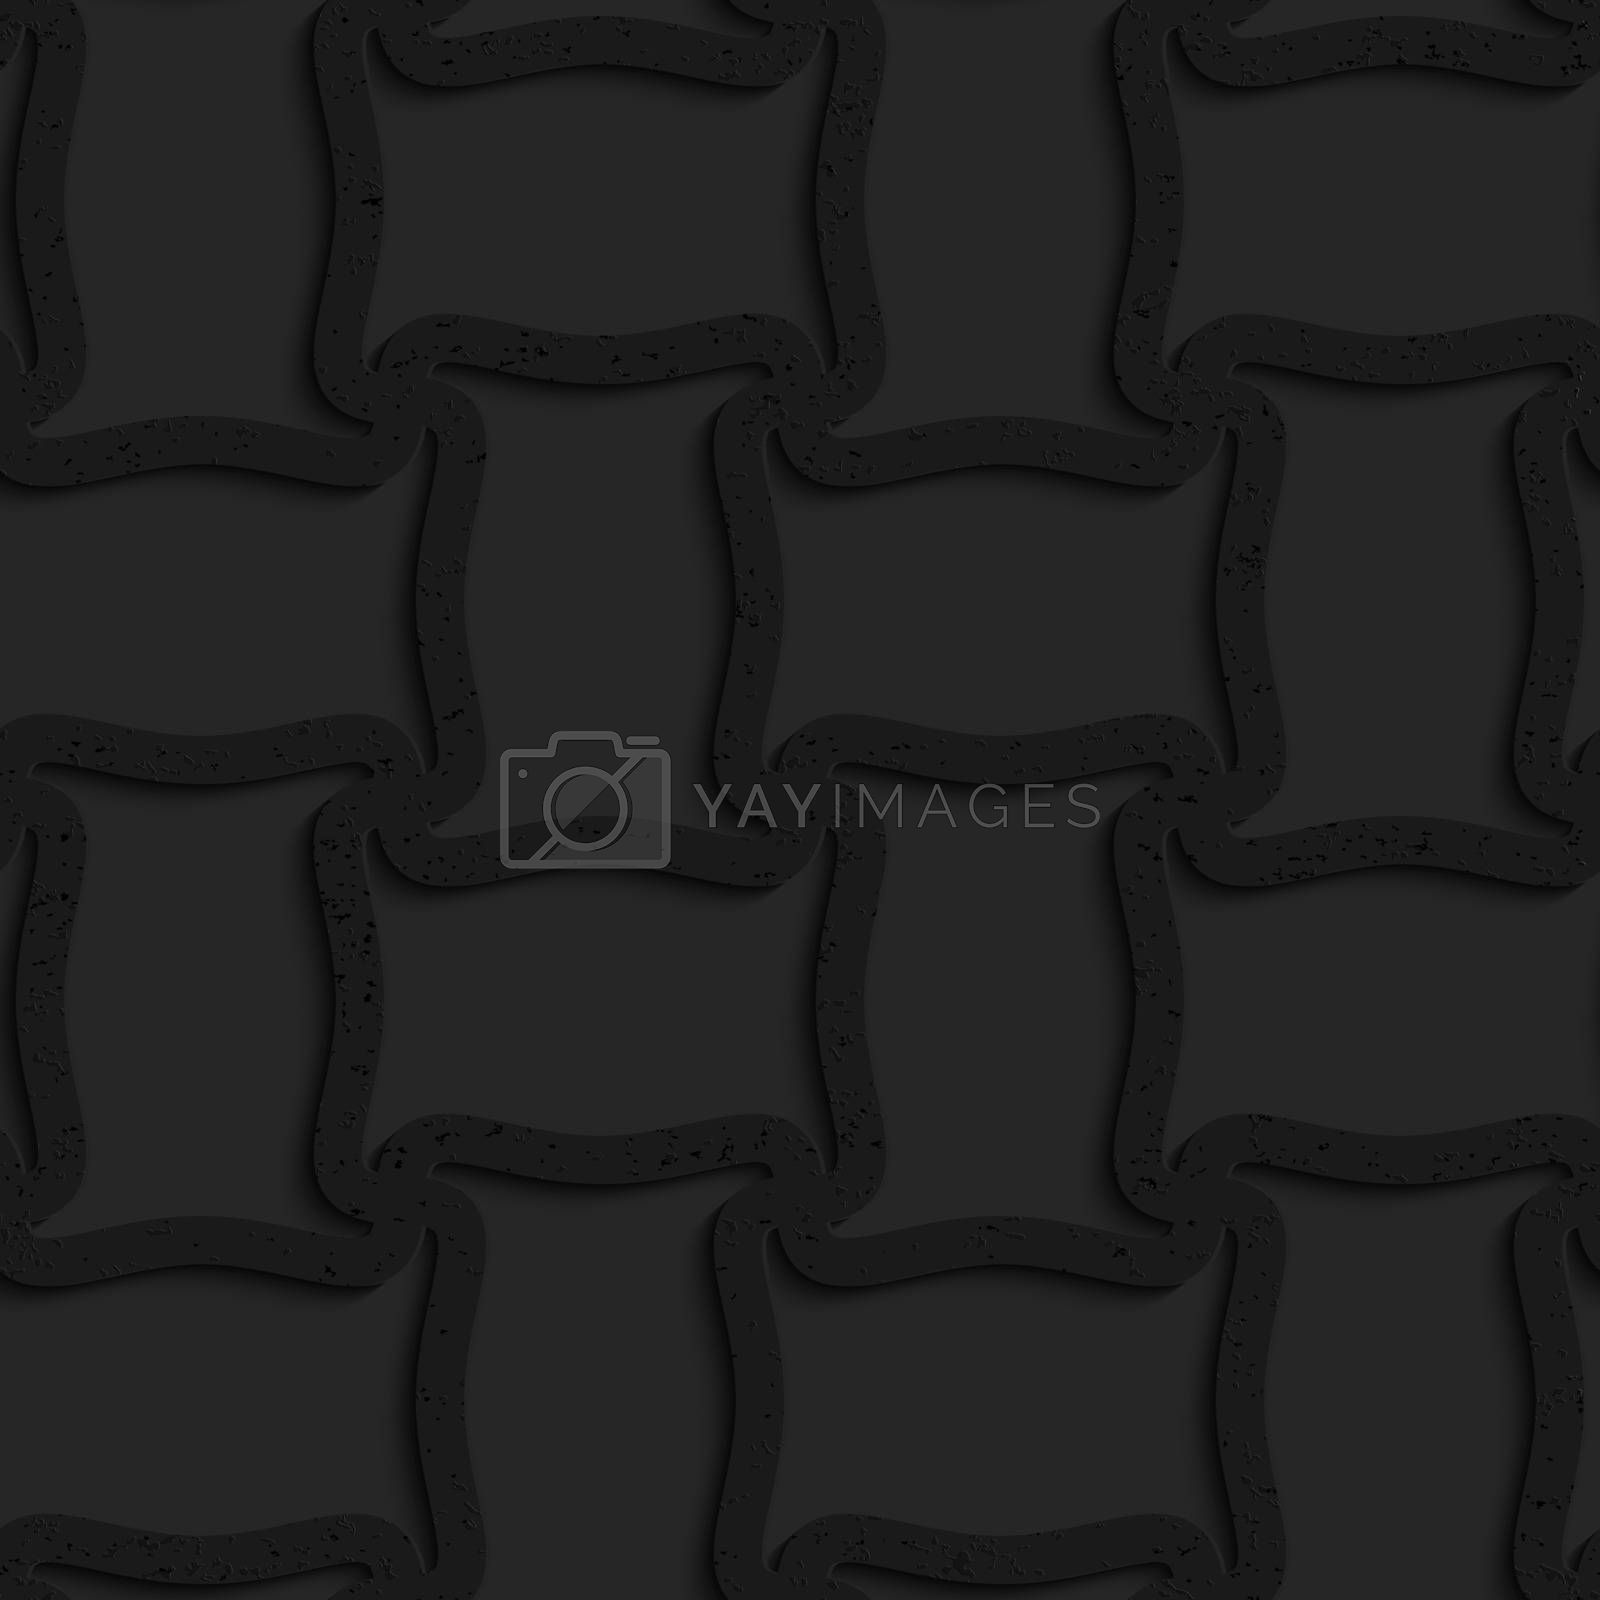 Seamless geometric background. Pattern with 3D texture and realistic shadow.Textured black plastic spool shape grid.